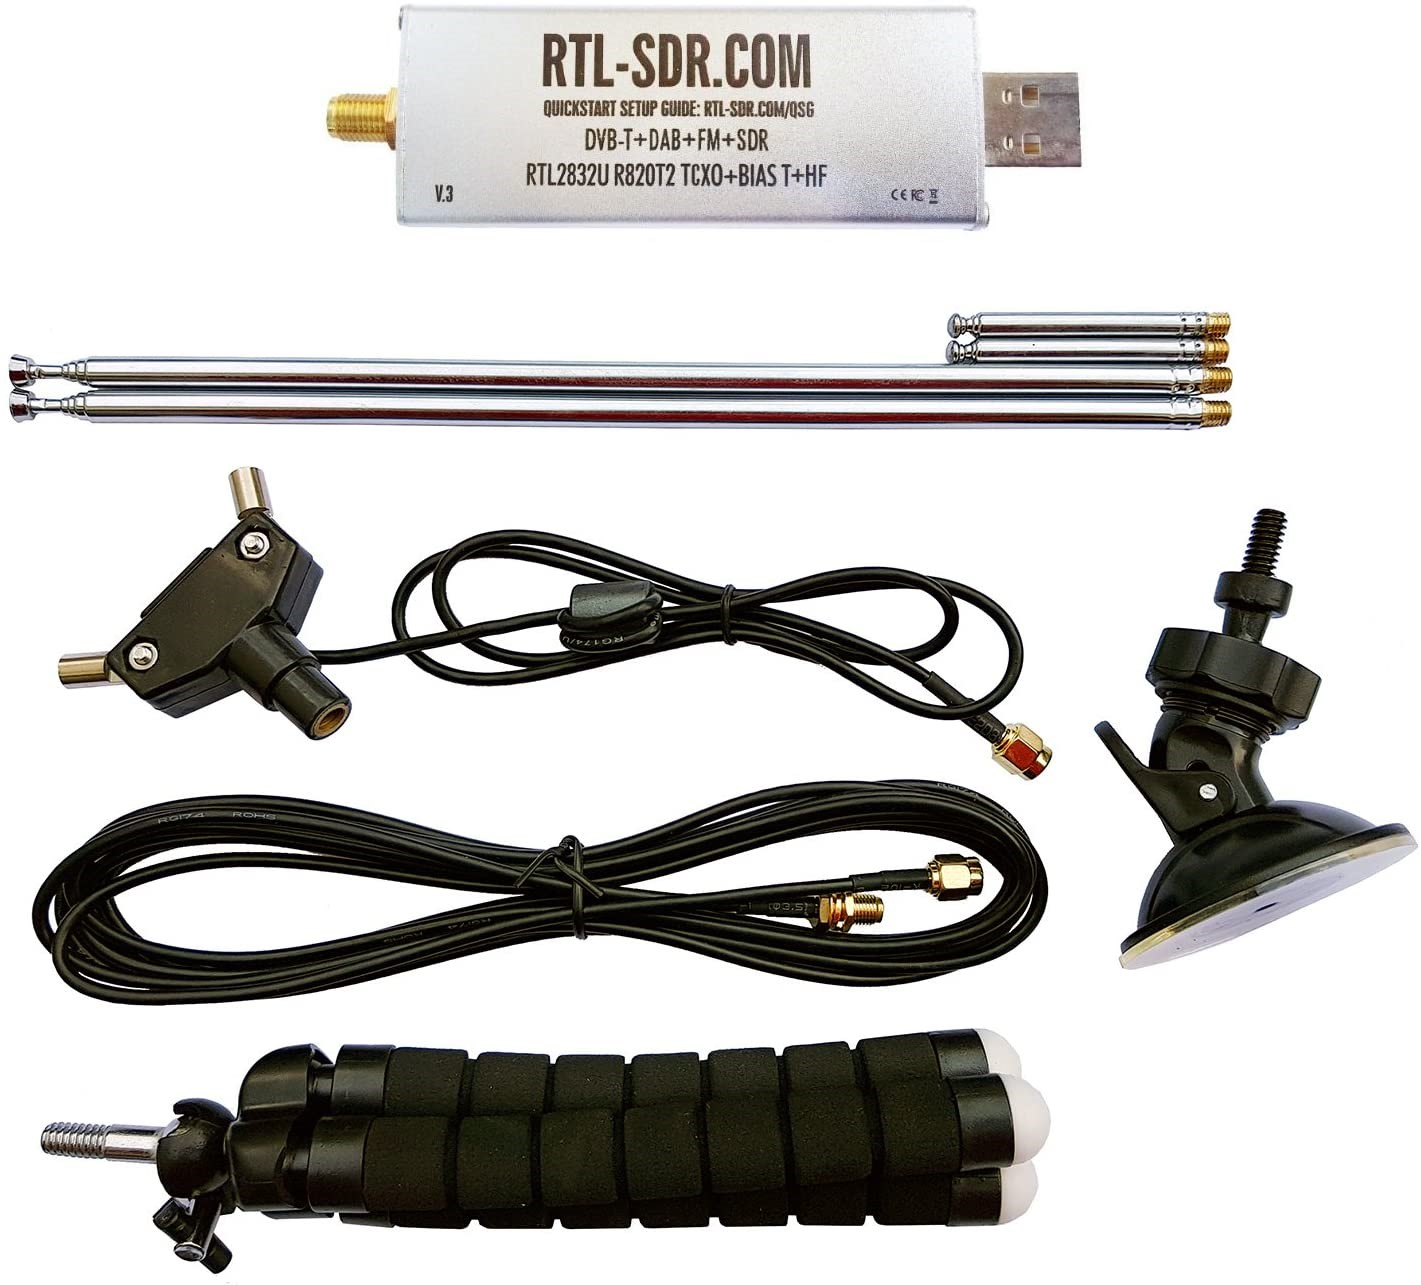 RTL-SDR Blog V3 SDR with Dipole Antenna Kit